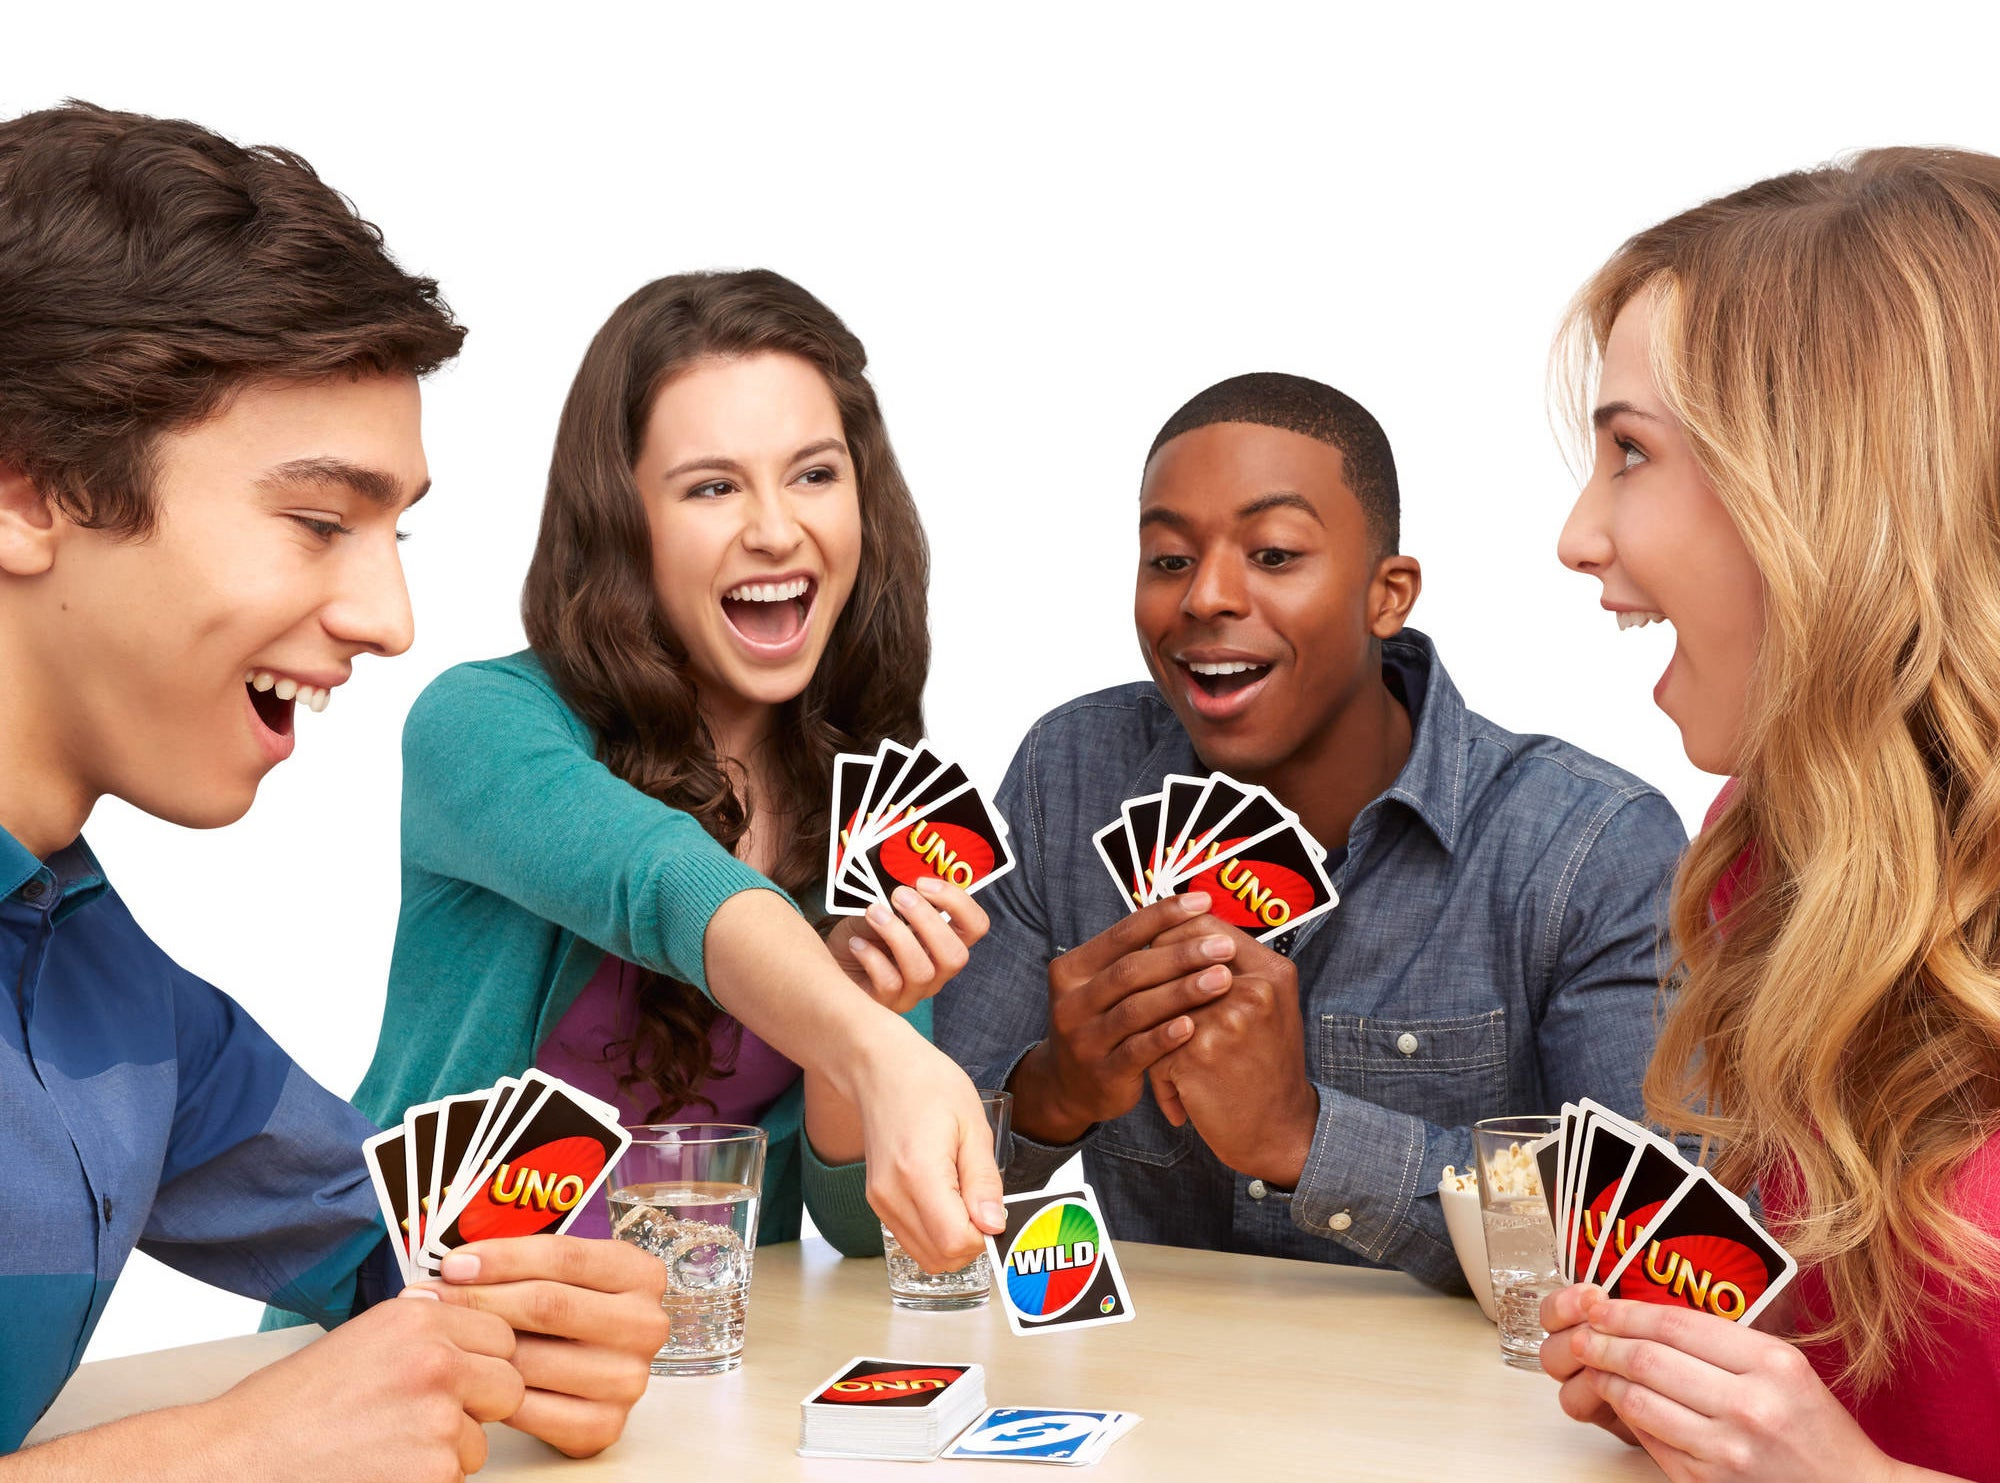 Uno cards being used to play a game